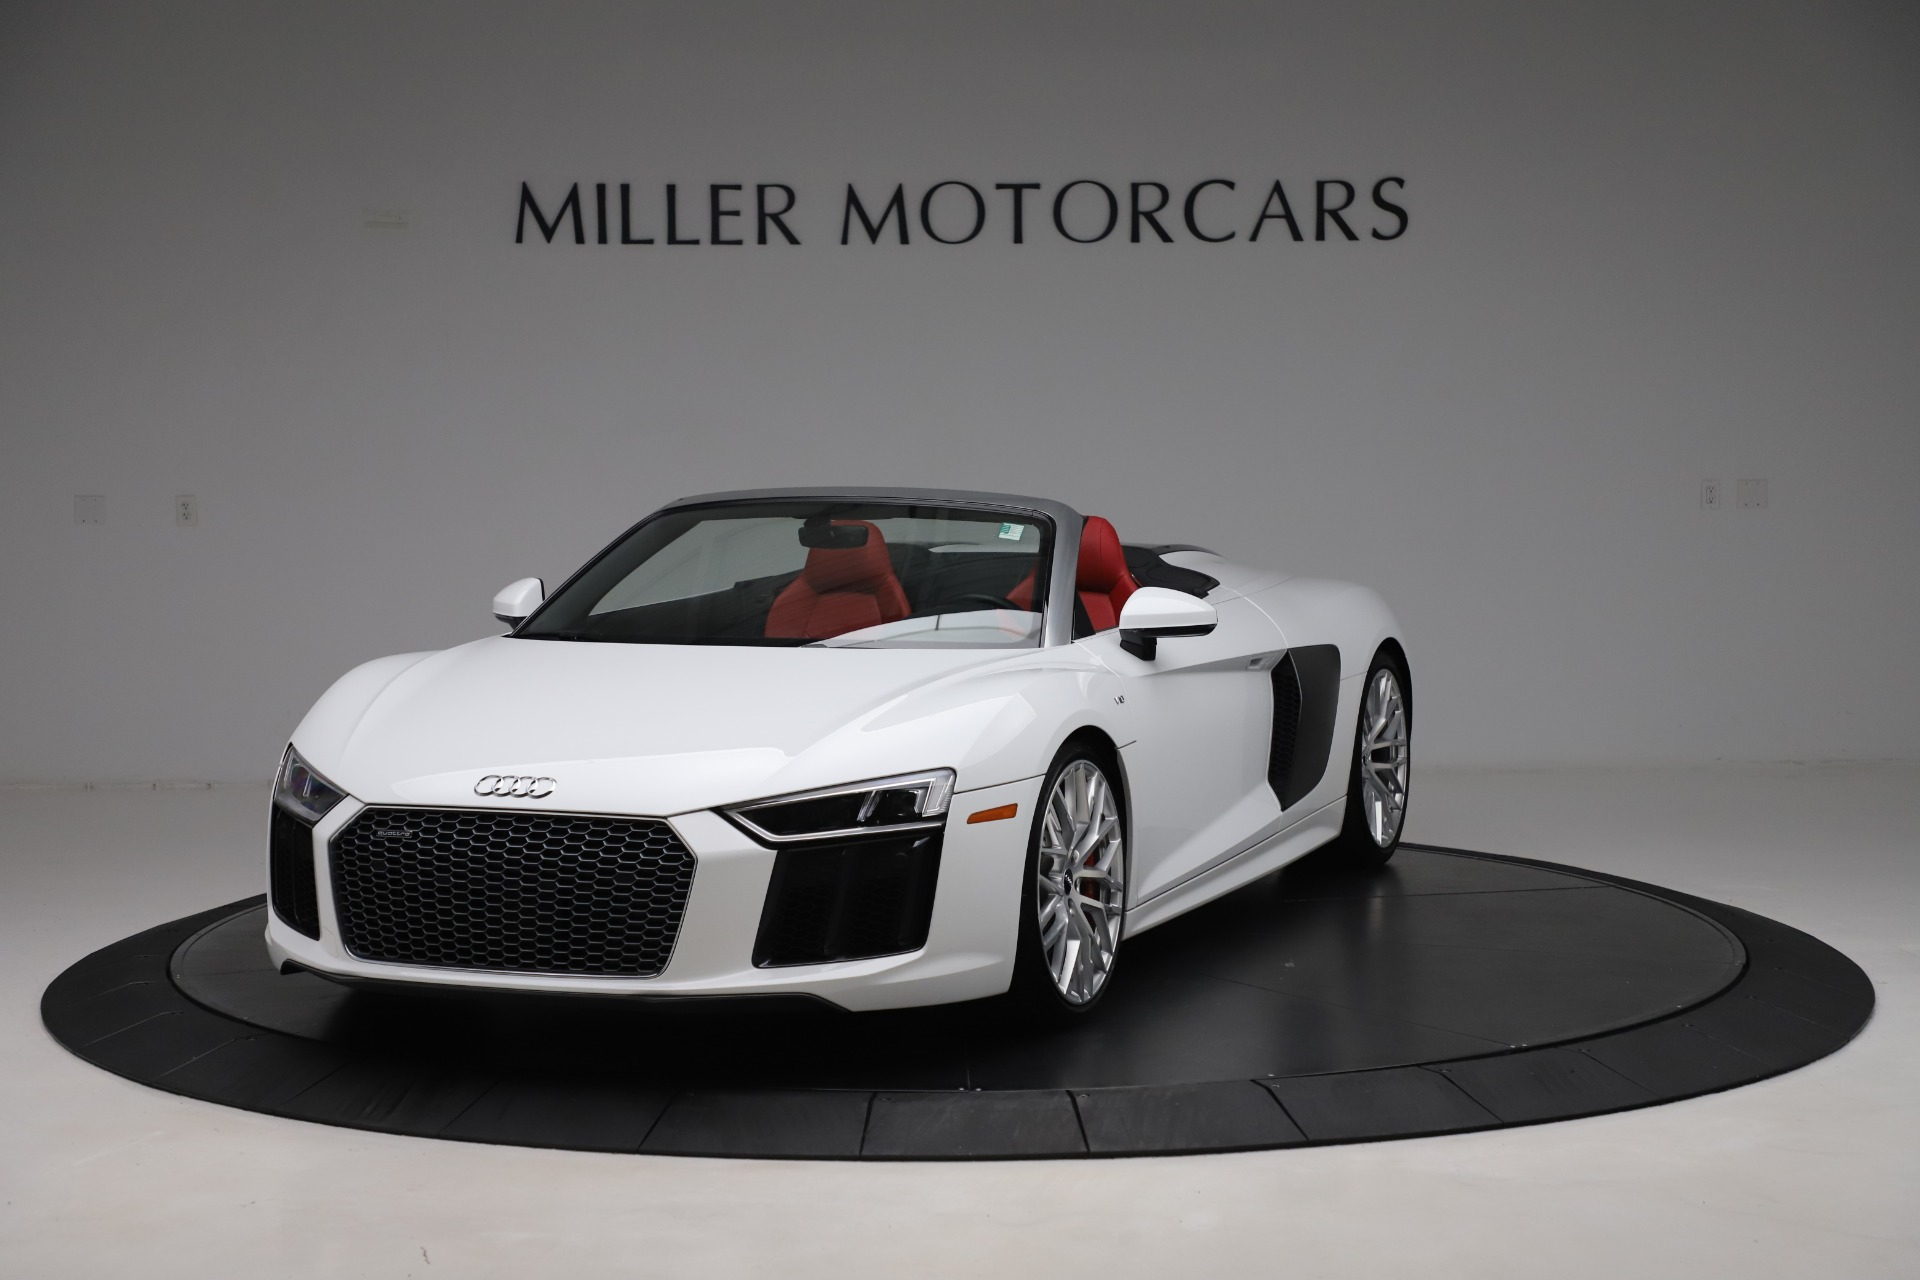 Used 2017 Audi R8 5.2 quattro V10 Spyder for sale $138,900 at Aston Martin of Greenwich in Greenwich CT 06830 1